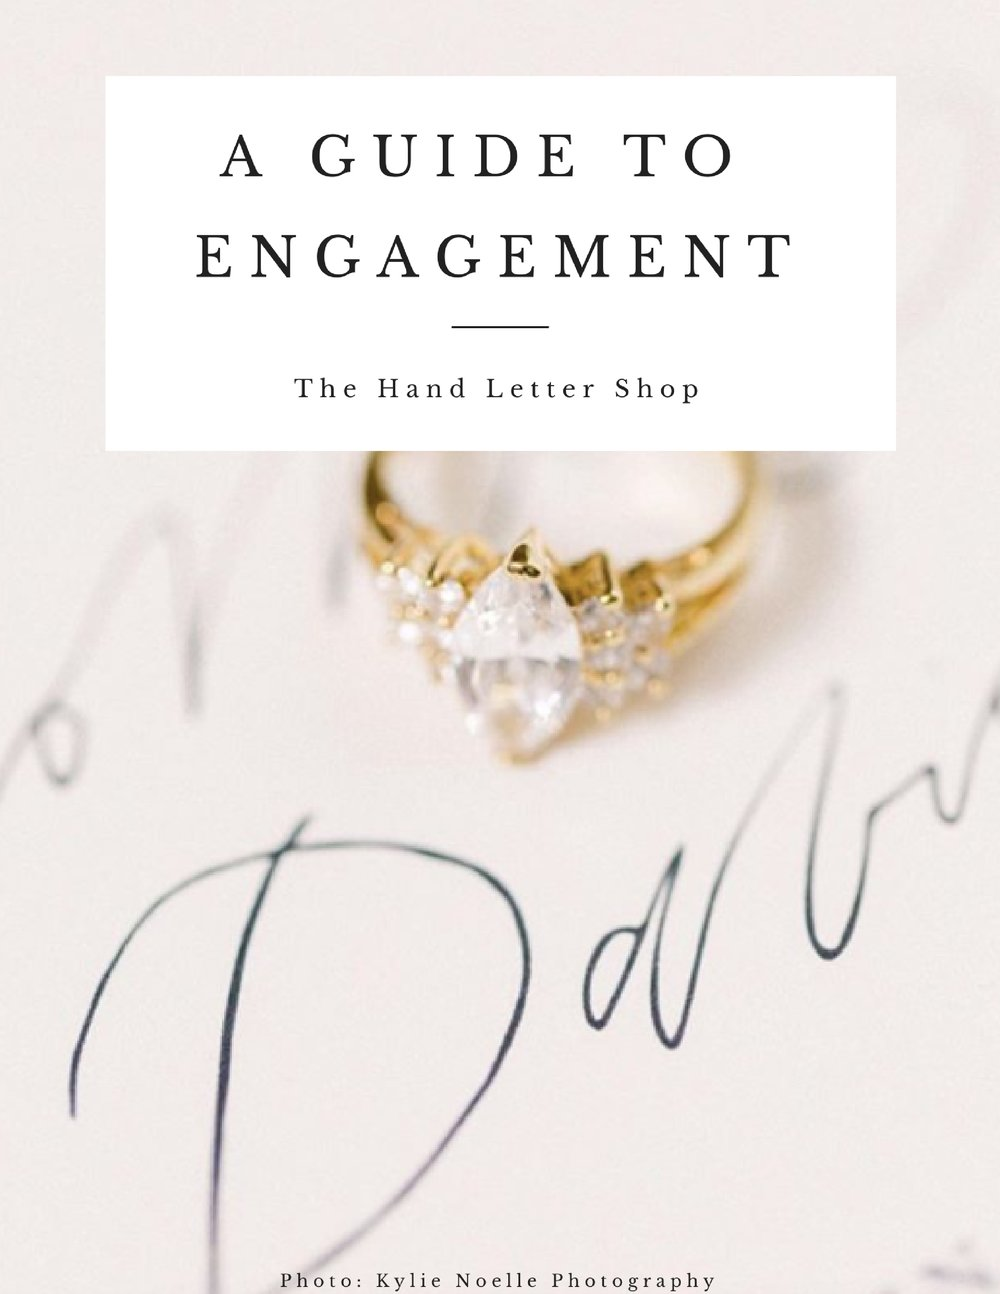 Your engagement doesn't have to be stressful! - Savor this time (and stay organized) with a free Guide to Engagement.